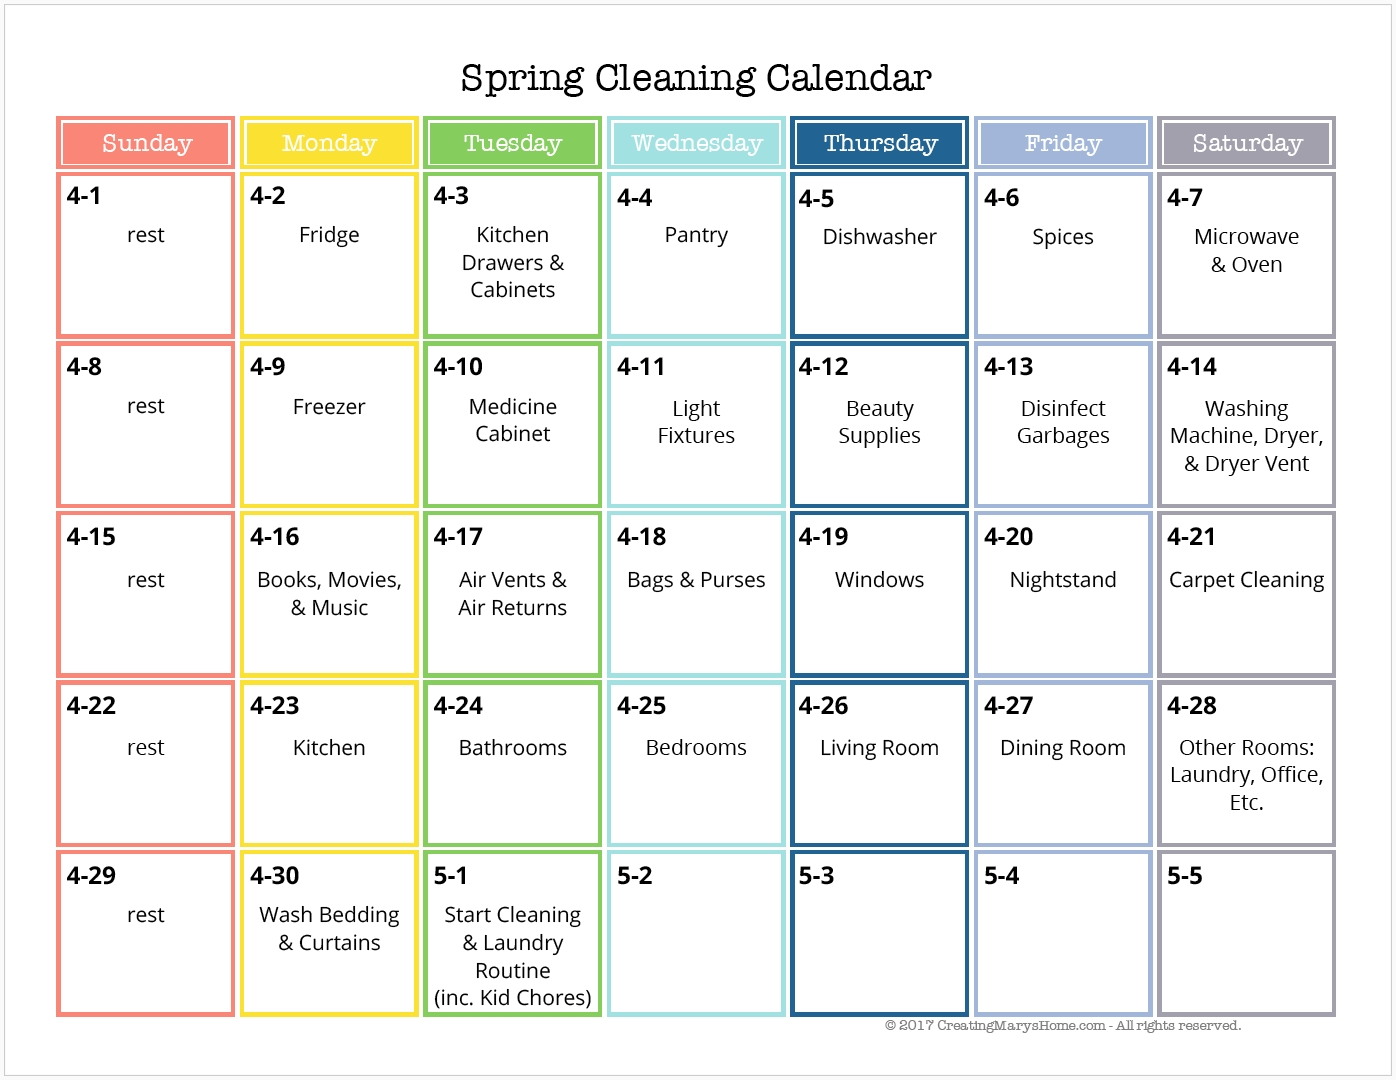 Spring Cleaning Bundle: Calendar, Checklists, And More